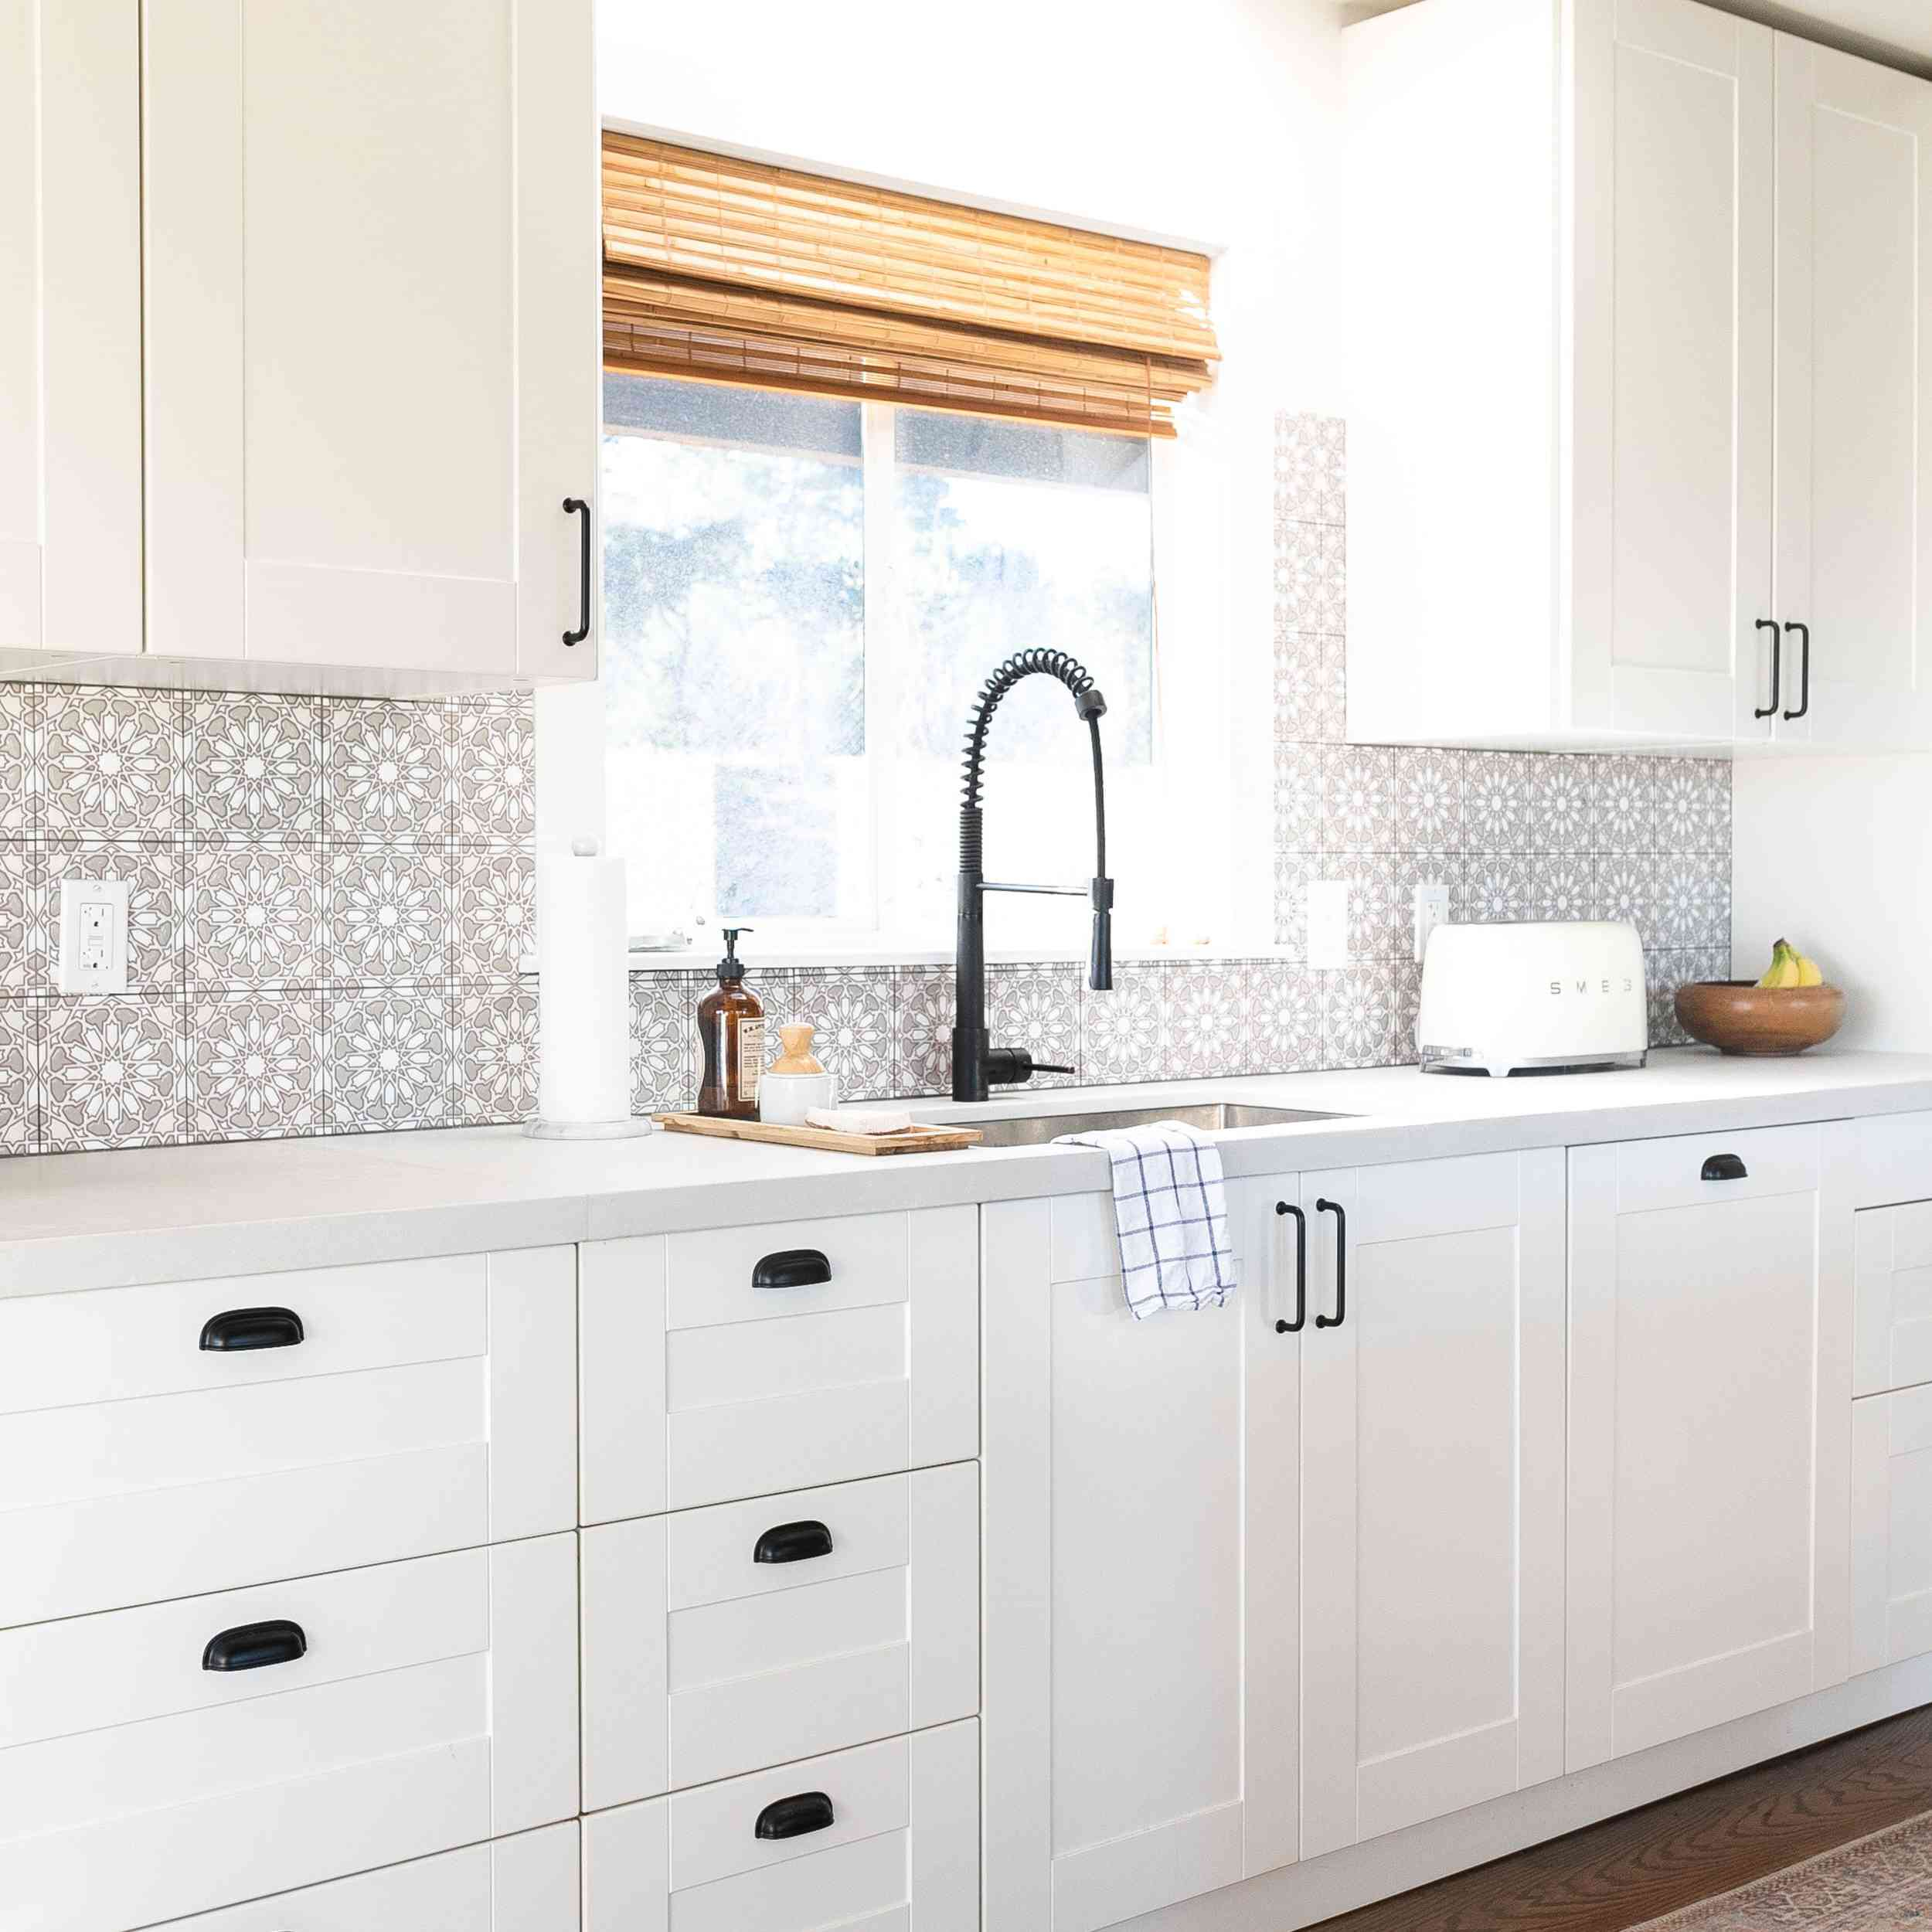 A kitchen with IKEA cabinets and a printed backsplash